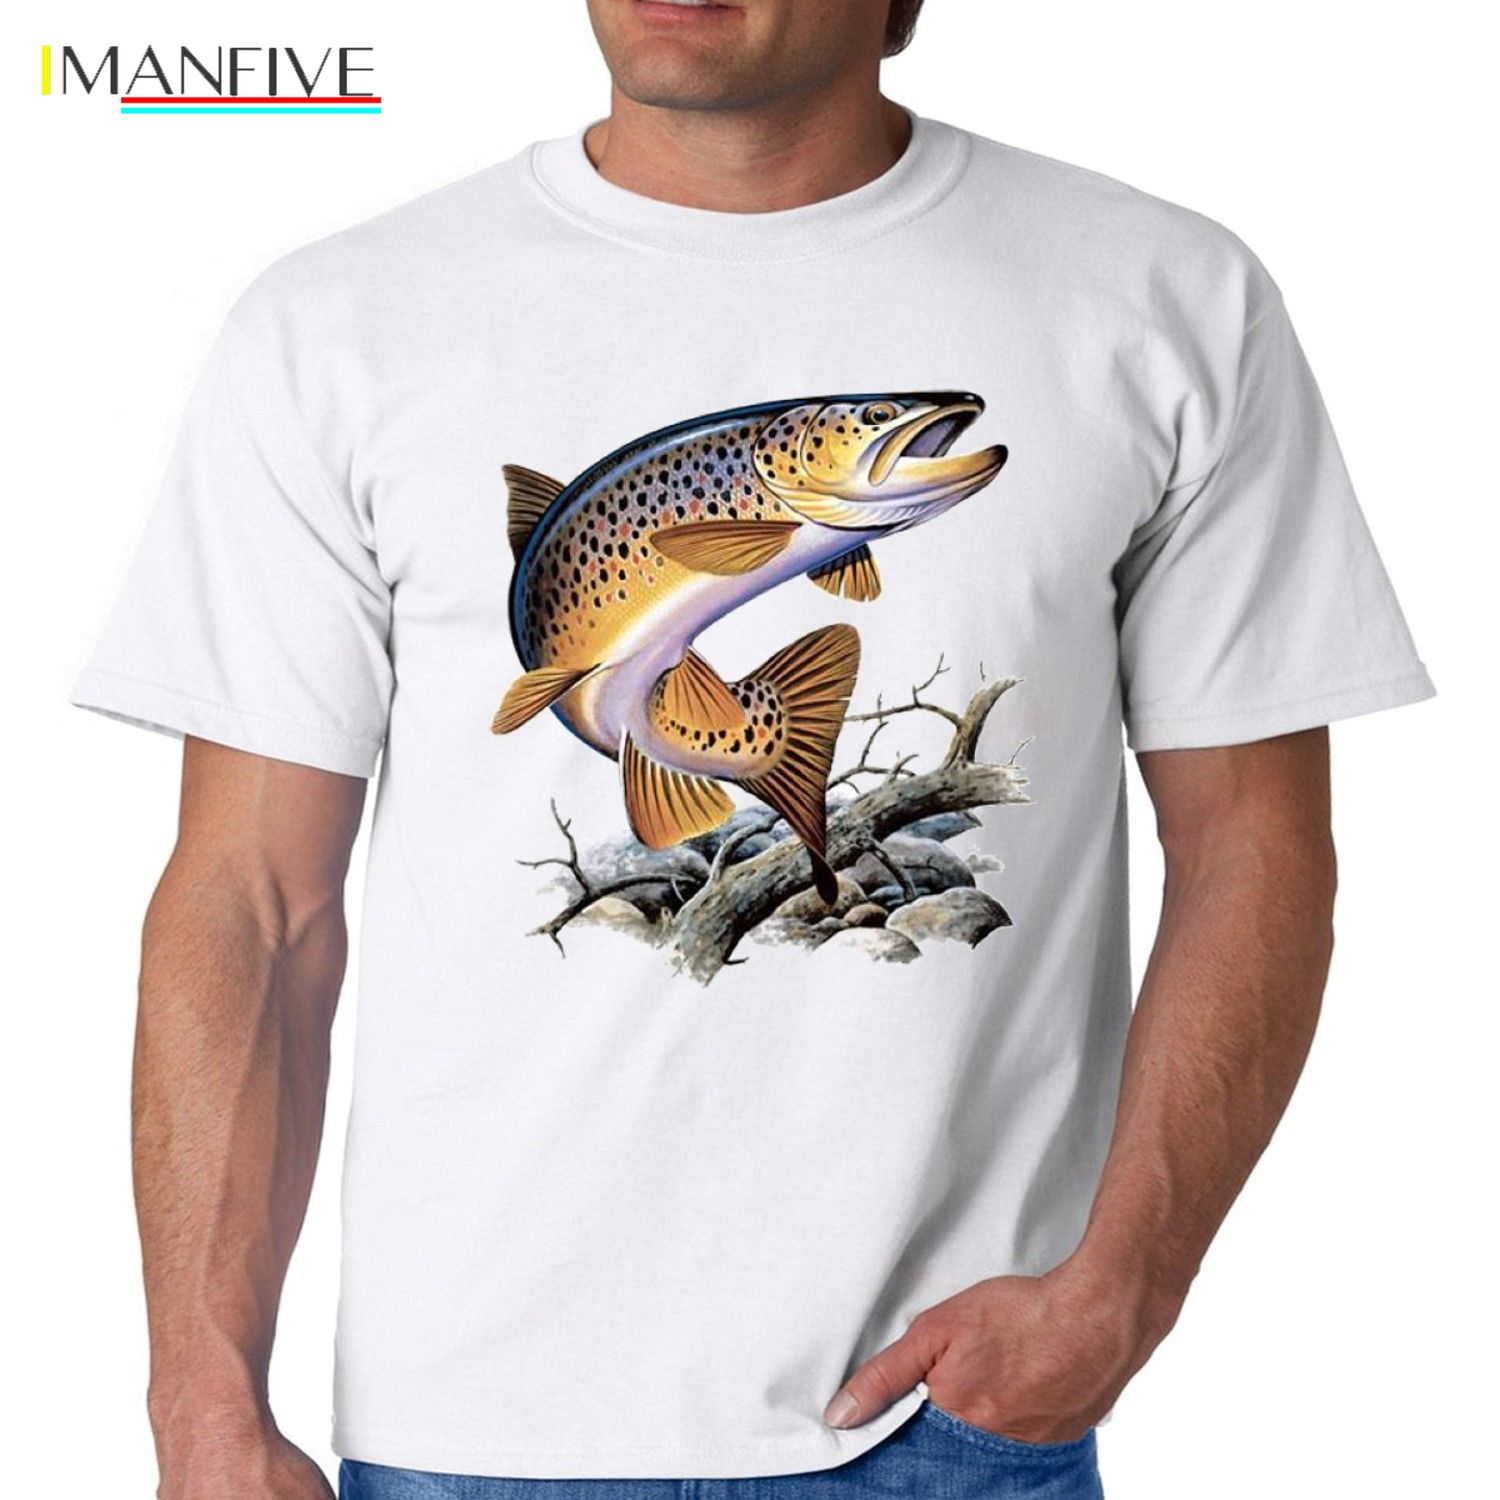 Brown Trout Fishing T Shirt Cool Casual pride t shirt men Unisex New Fashion tshirt free shipping tops ajax 2019 funny t shirts in T Shirts from Men 39 s Clothing